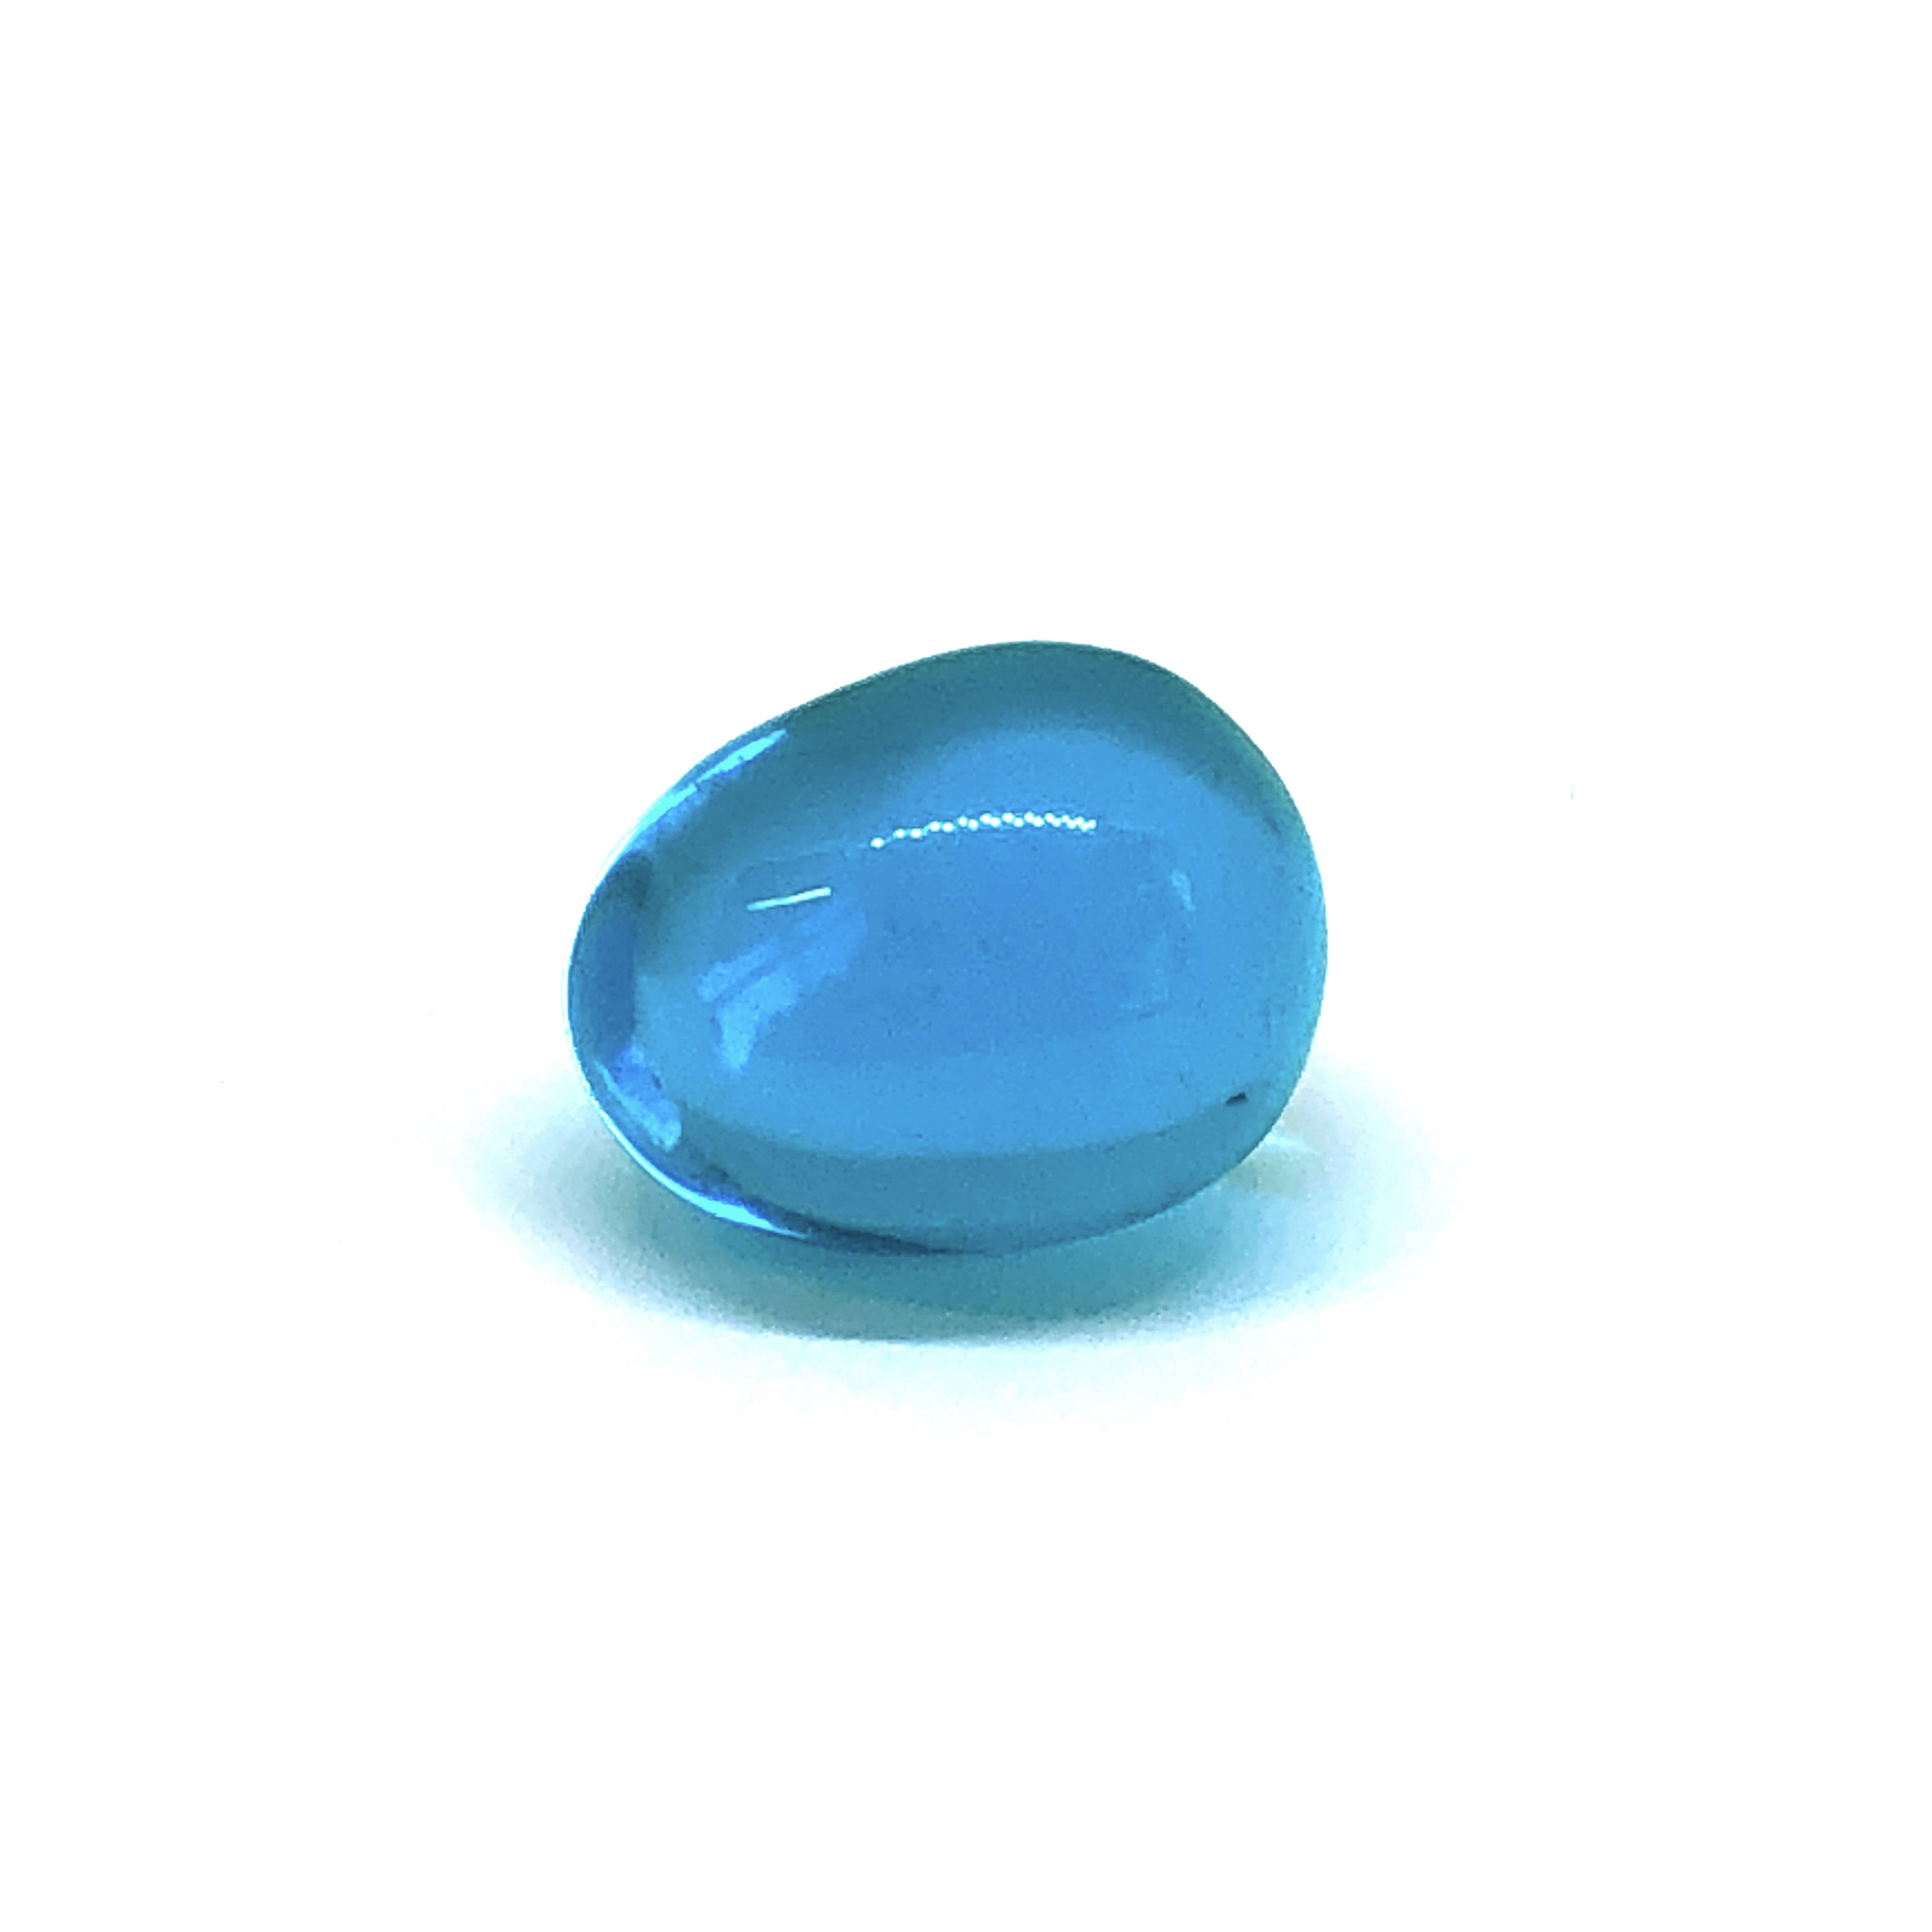 Blue glass egg, solid glass, 09811, egg, blue egg, glass, 20x15mm, jewelry making supplies, glass stones, b'sueboutiques, glass stone, beads, blue stone